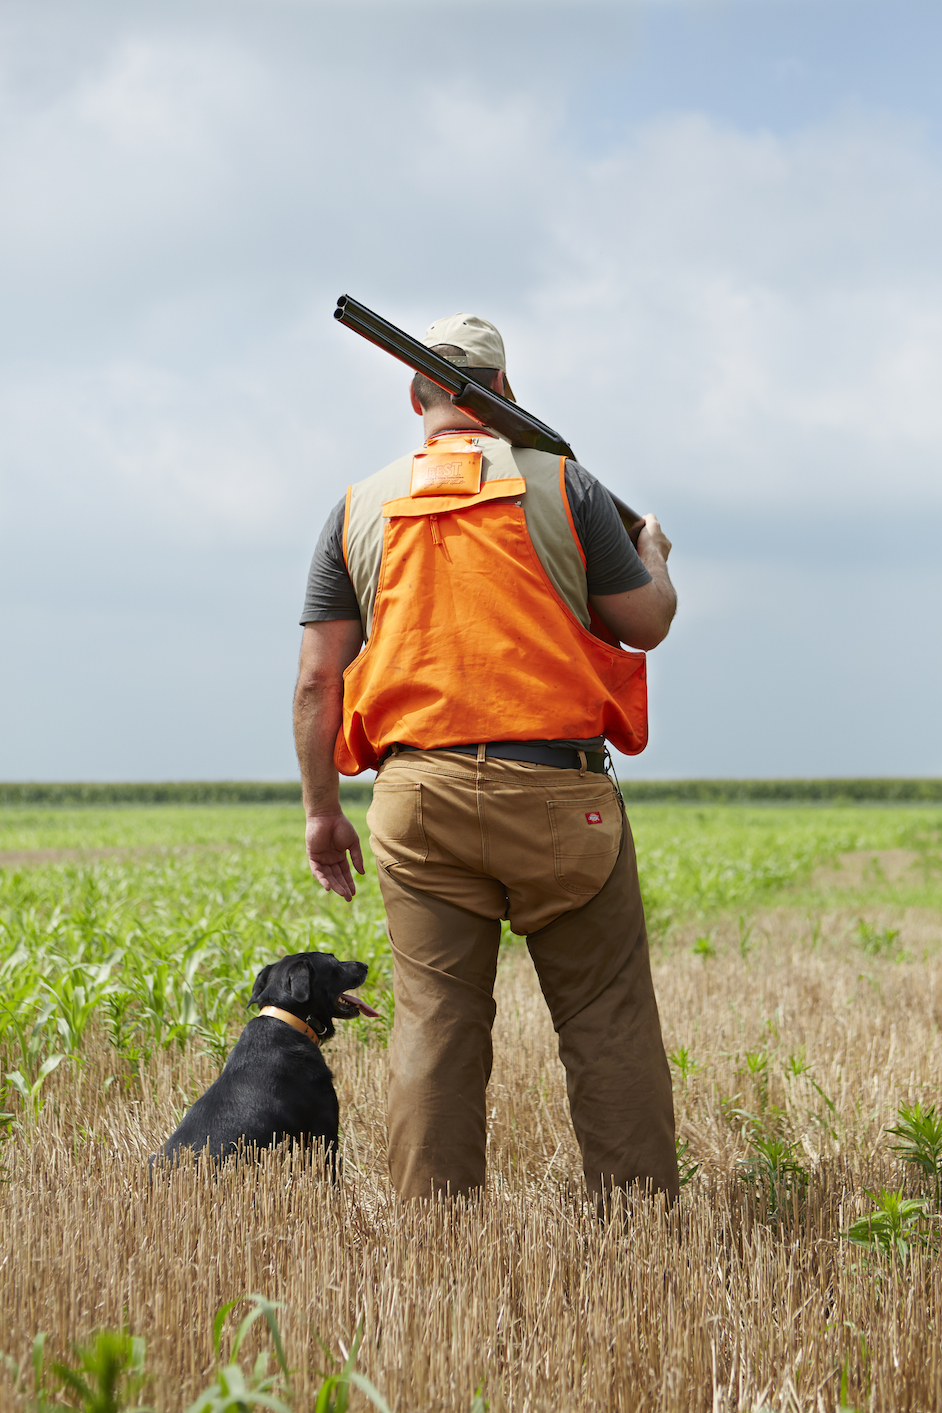 Local hunter Steve Berk with his hunting dog, Lulu, at Cherrybend Pheasant Farm